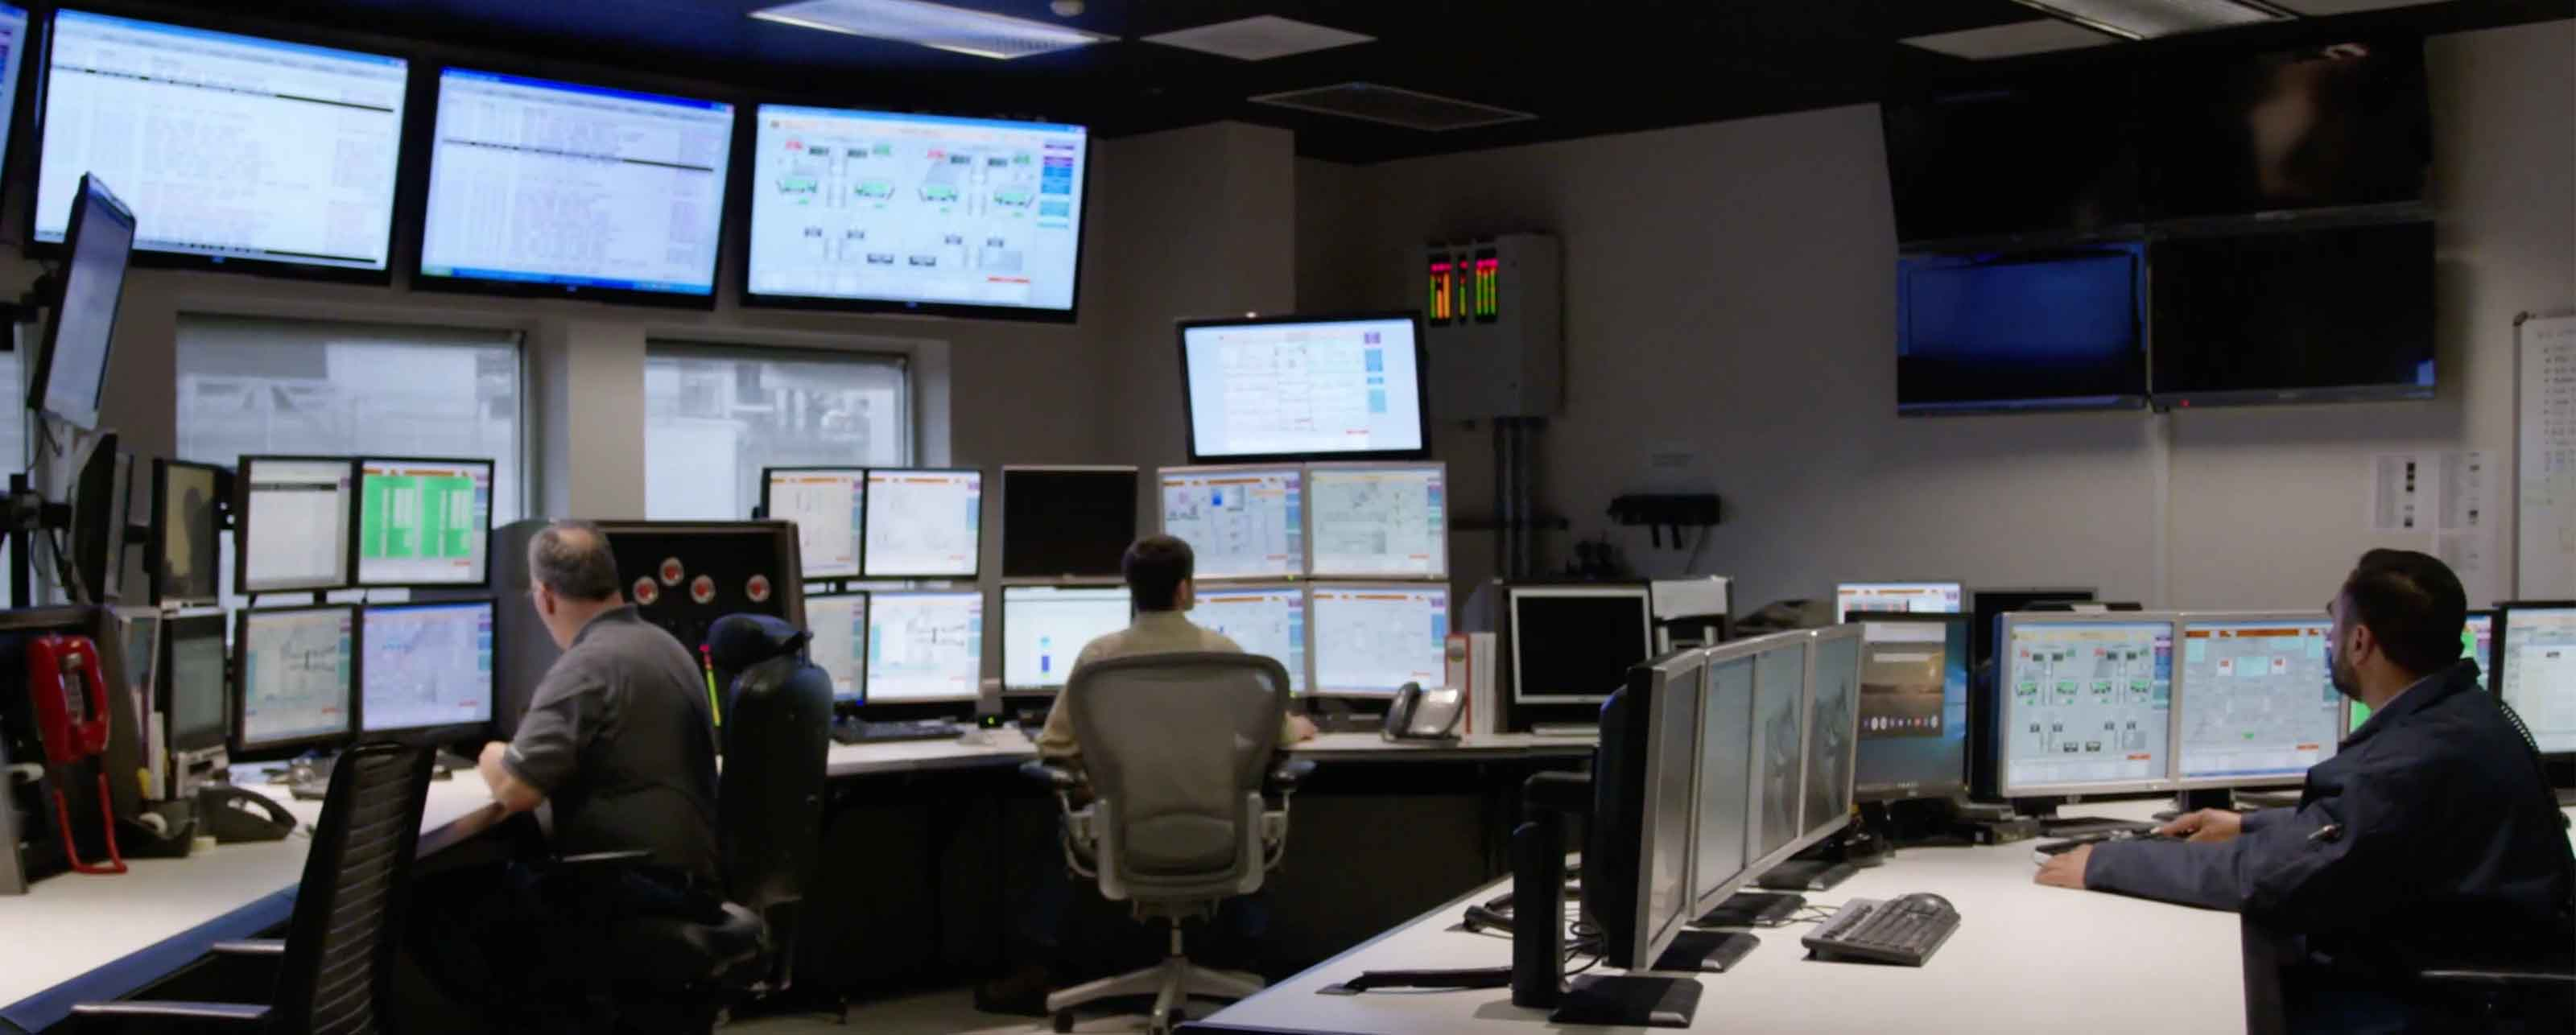 CPV Control Room  uses OPM software from GE Digital to improve performance